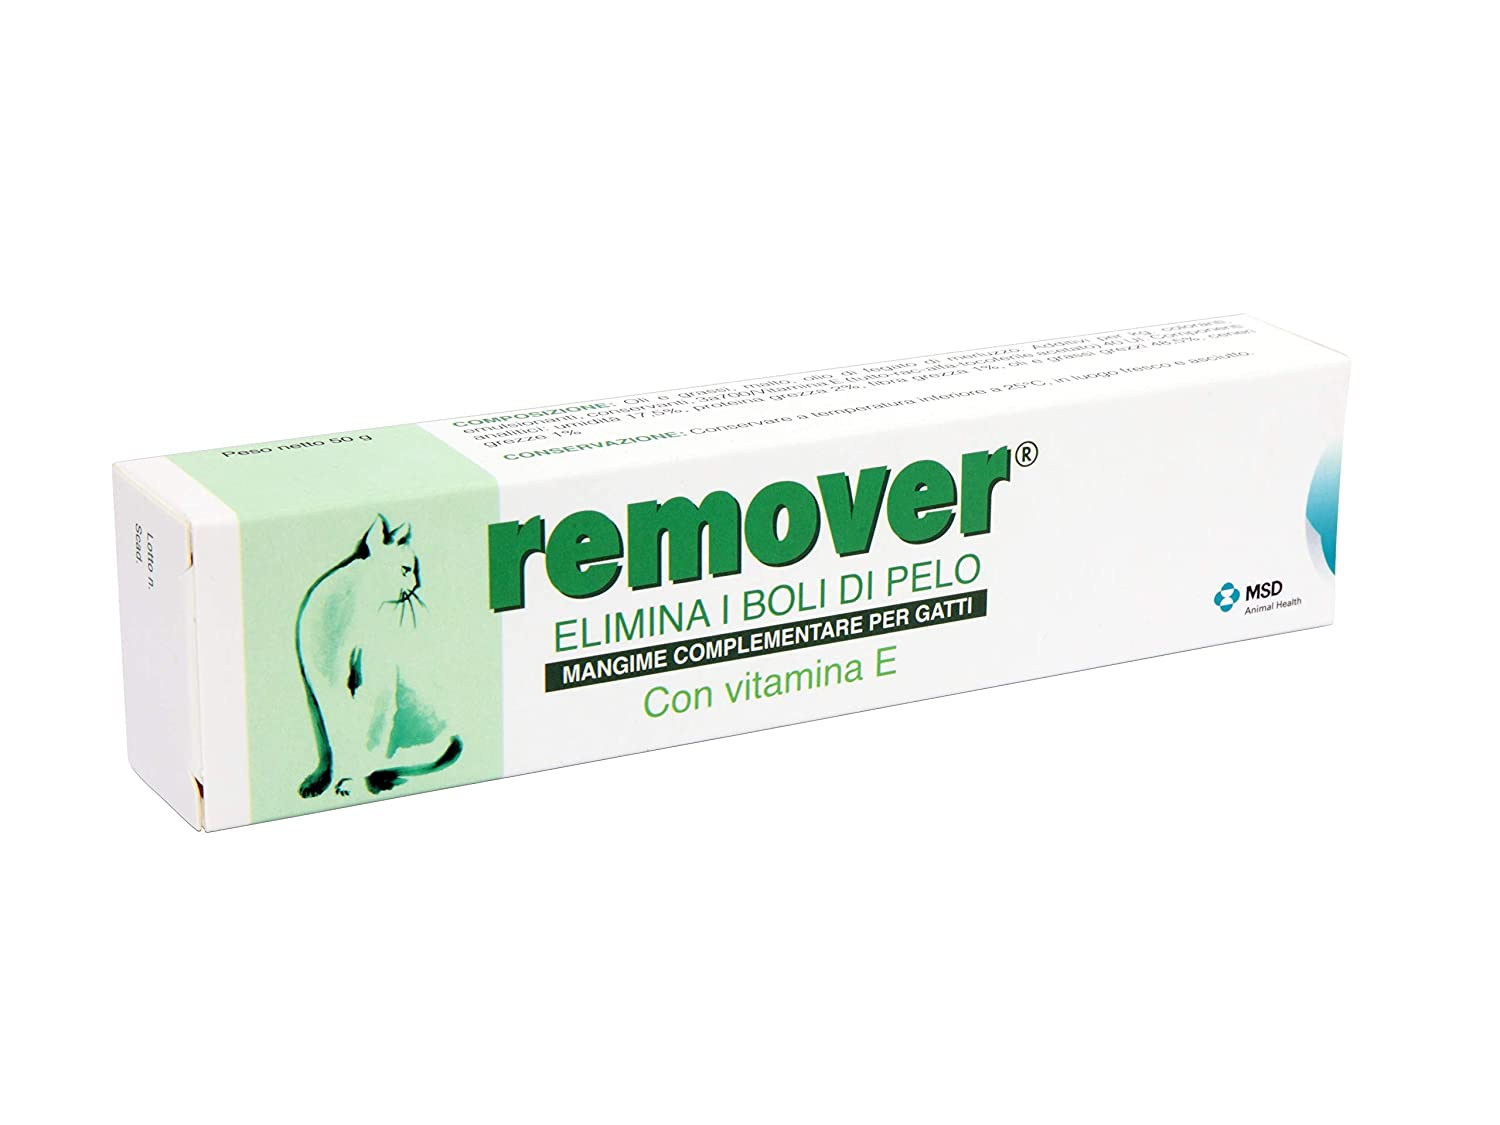 Remover 50 G Msd Animal Health